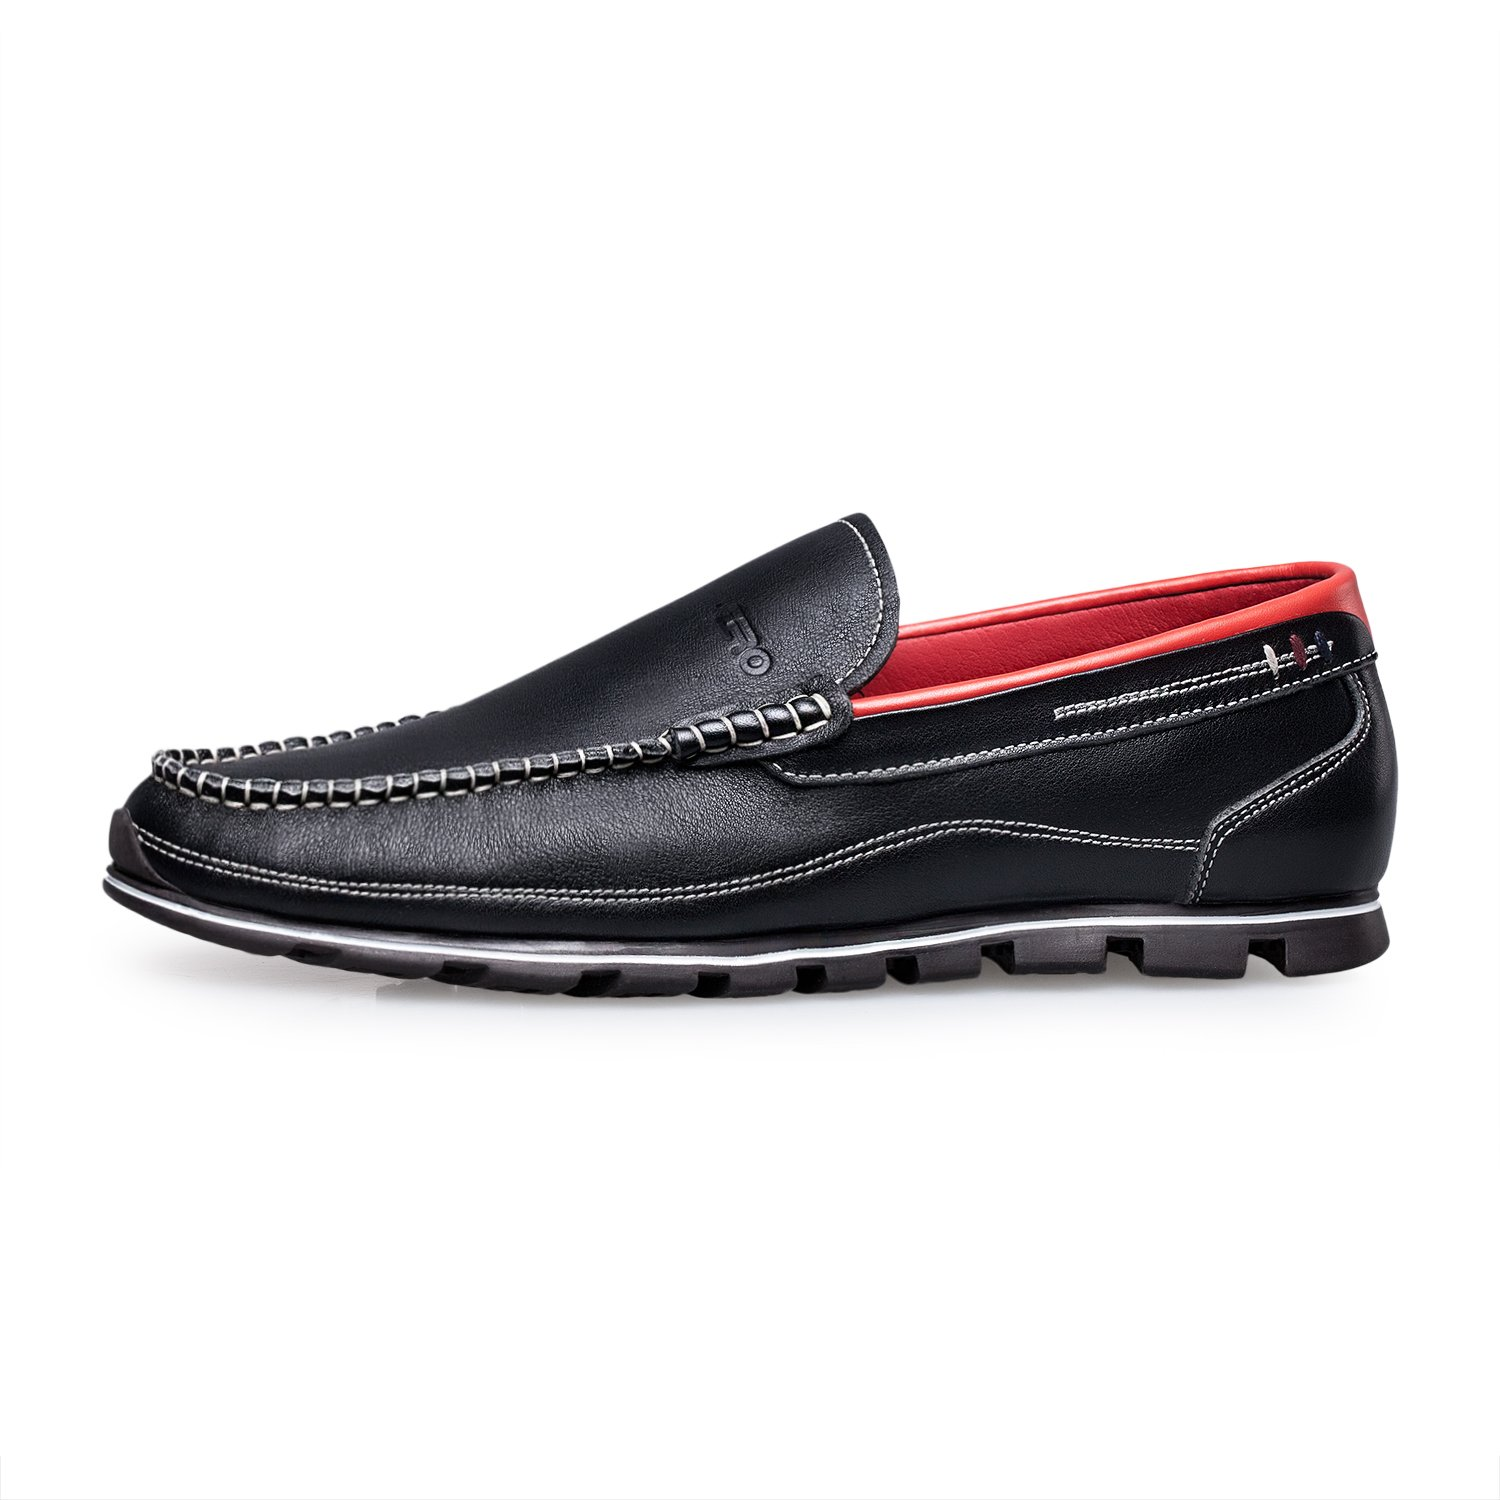 ZRO Men's Classy Black Penny Slip-on Loafer for Driving Working Walking Dress Running 10 M US by ZRO (Image #3)